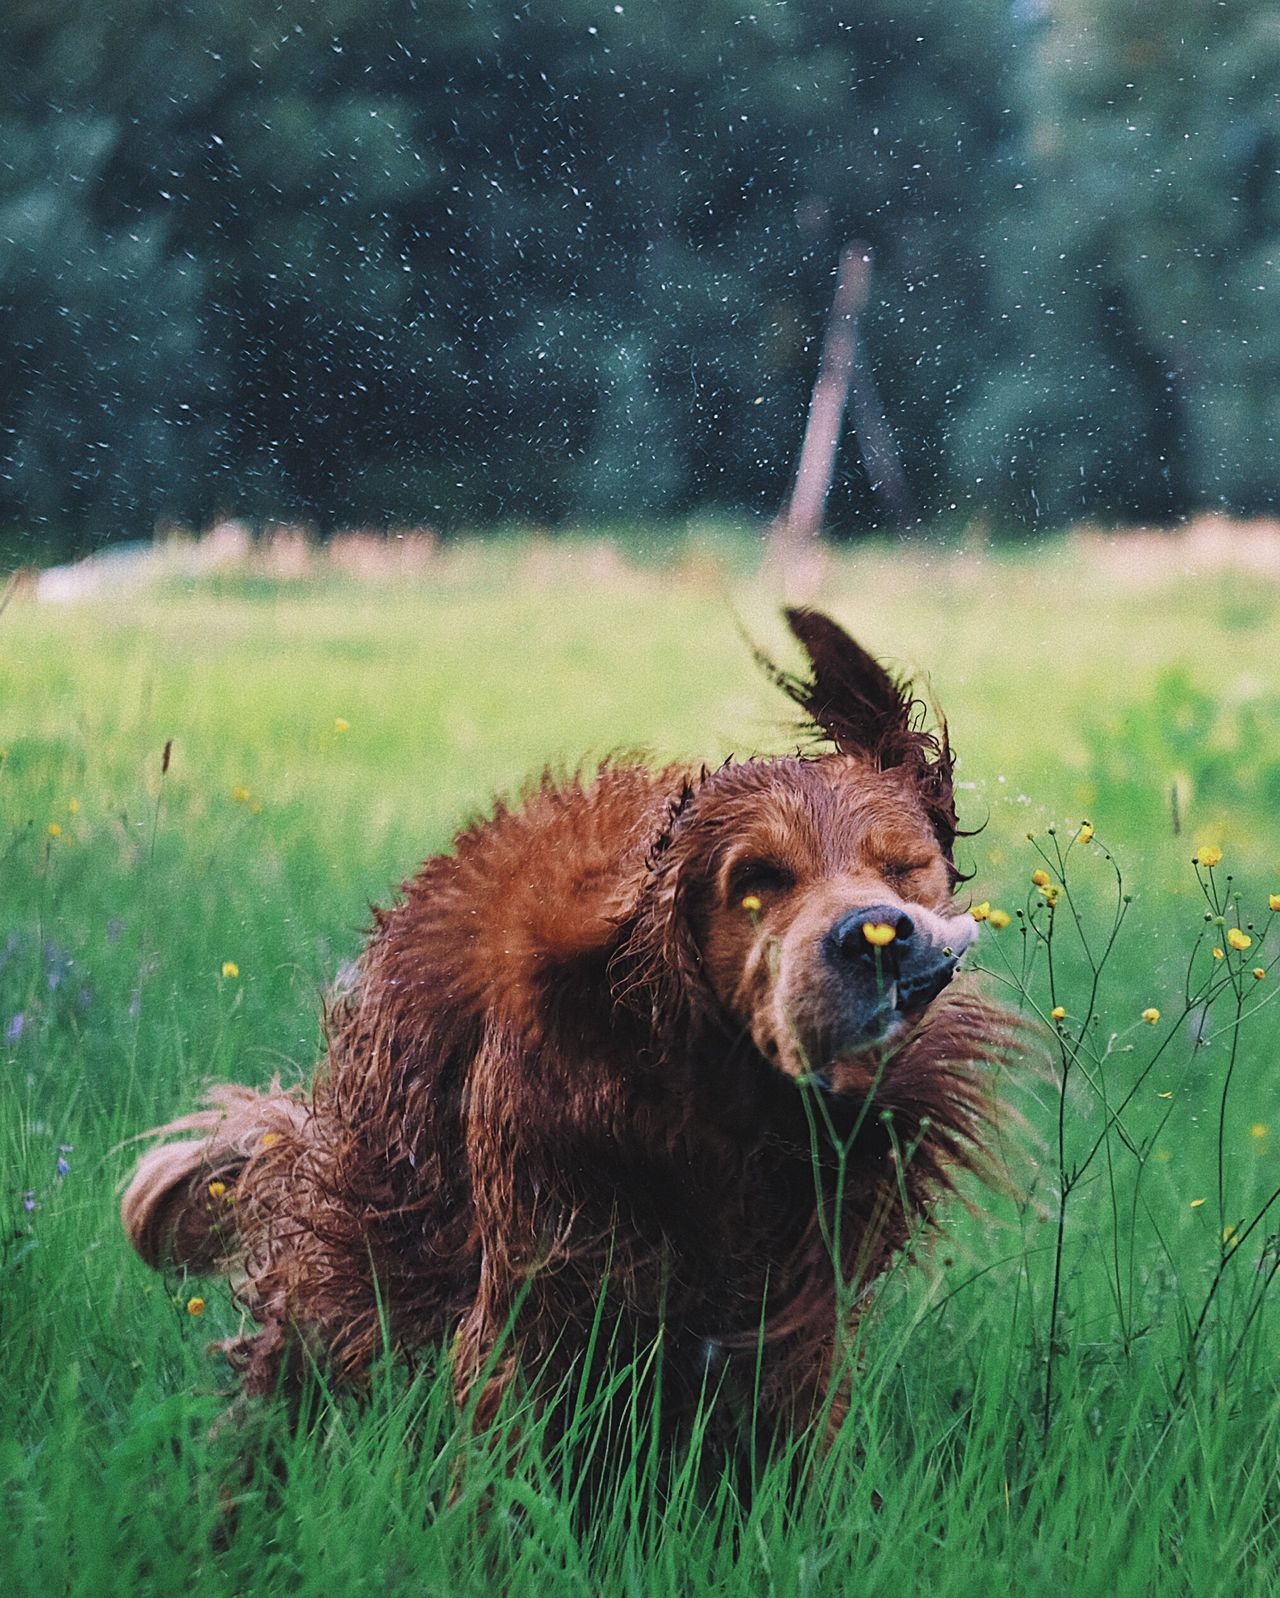 One Animal Grass Mammal Animal Themes No People Outdoors Day Nature Domestic Animals Animals In The Wild Close-up Fujifilm_xseries Nature Golden Retriever Sommergefühle